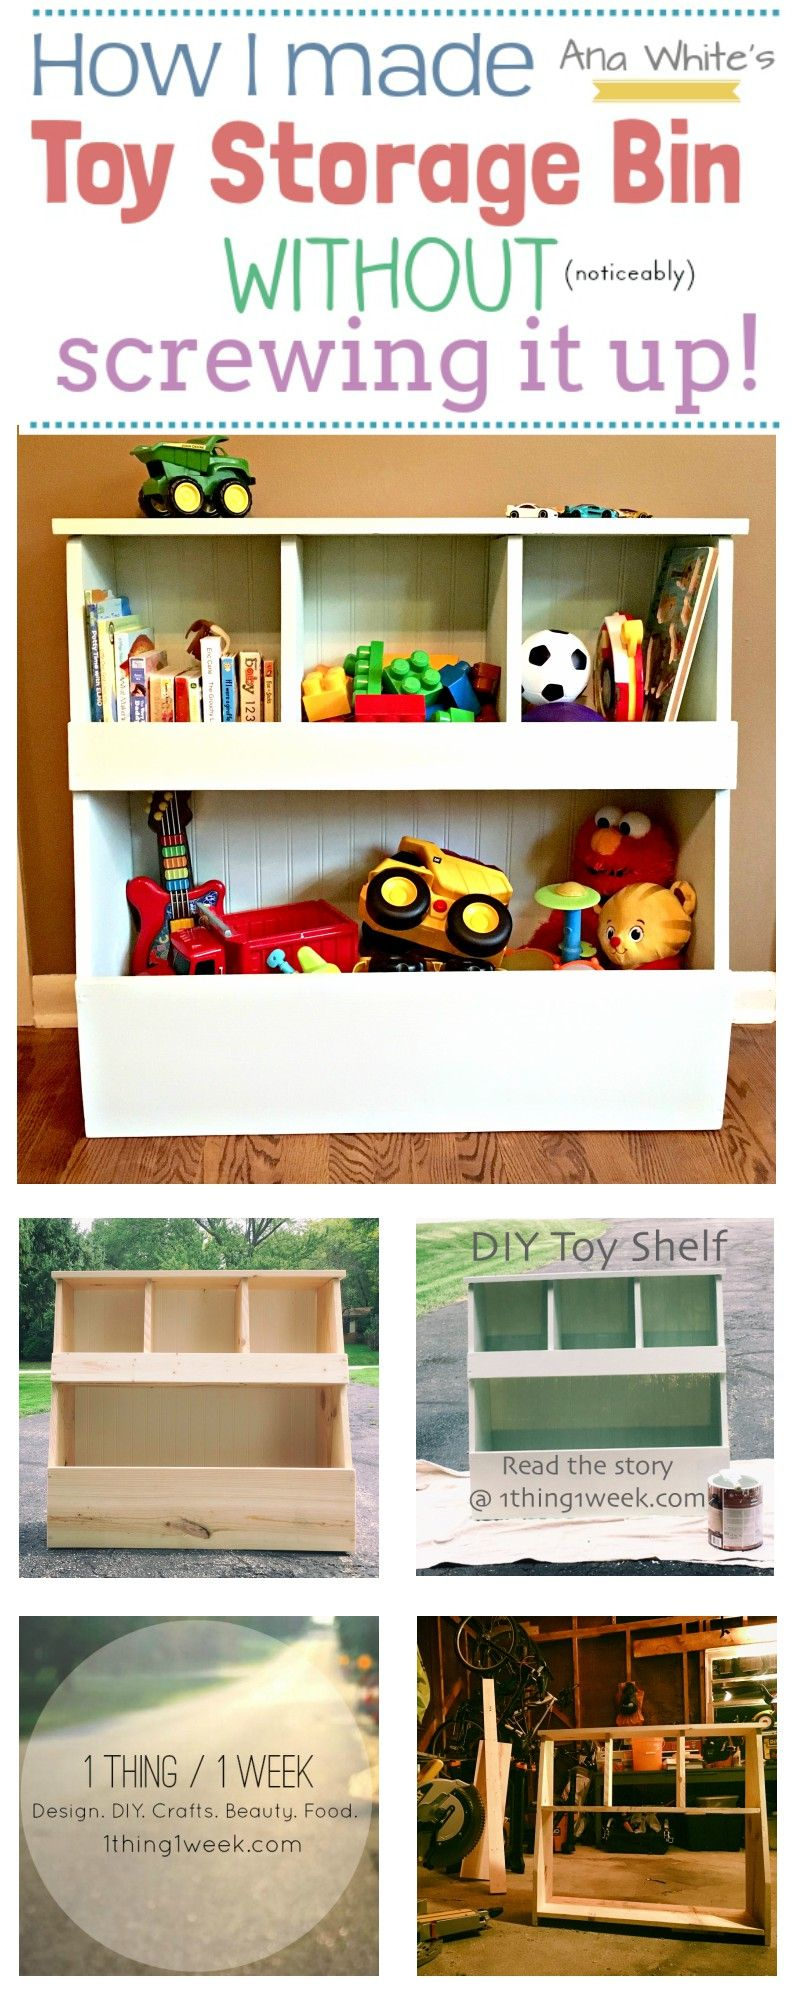 I Followed Ana White S Plans For A Diy Toy Shelf For My Son Read The Story At My Blog 1thing1week Com Diy Toy Storage Toy Storage Bins Creative Toy Storage